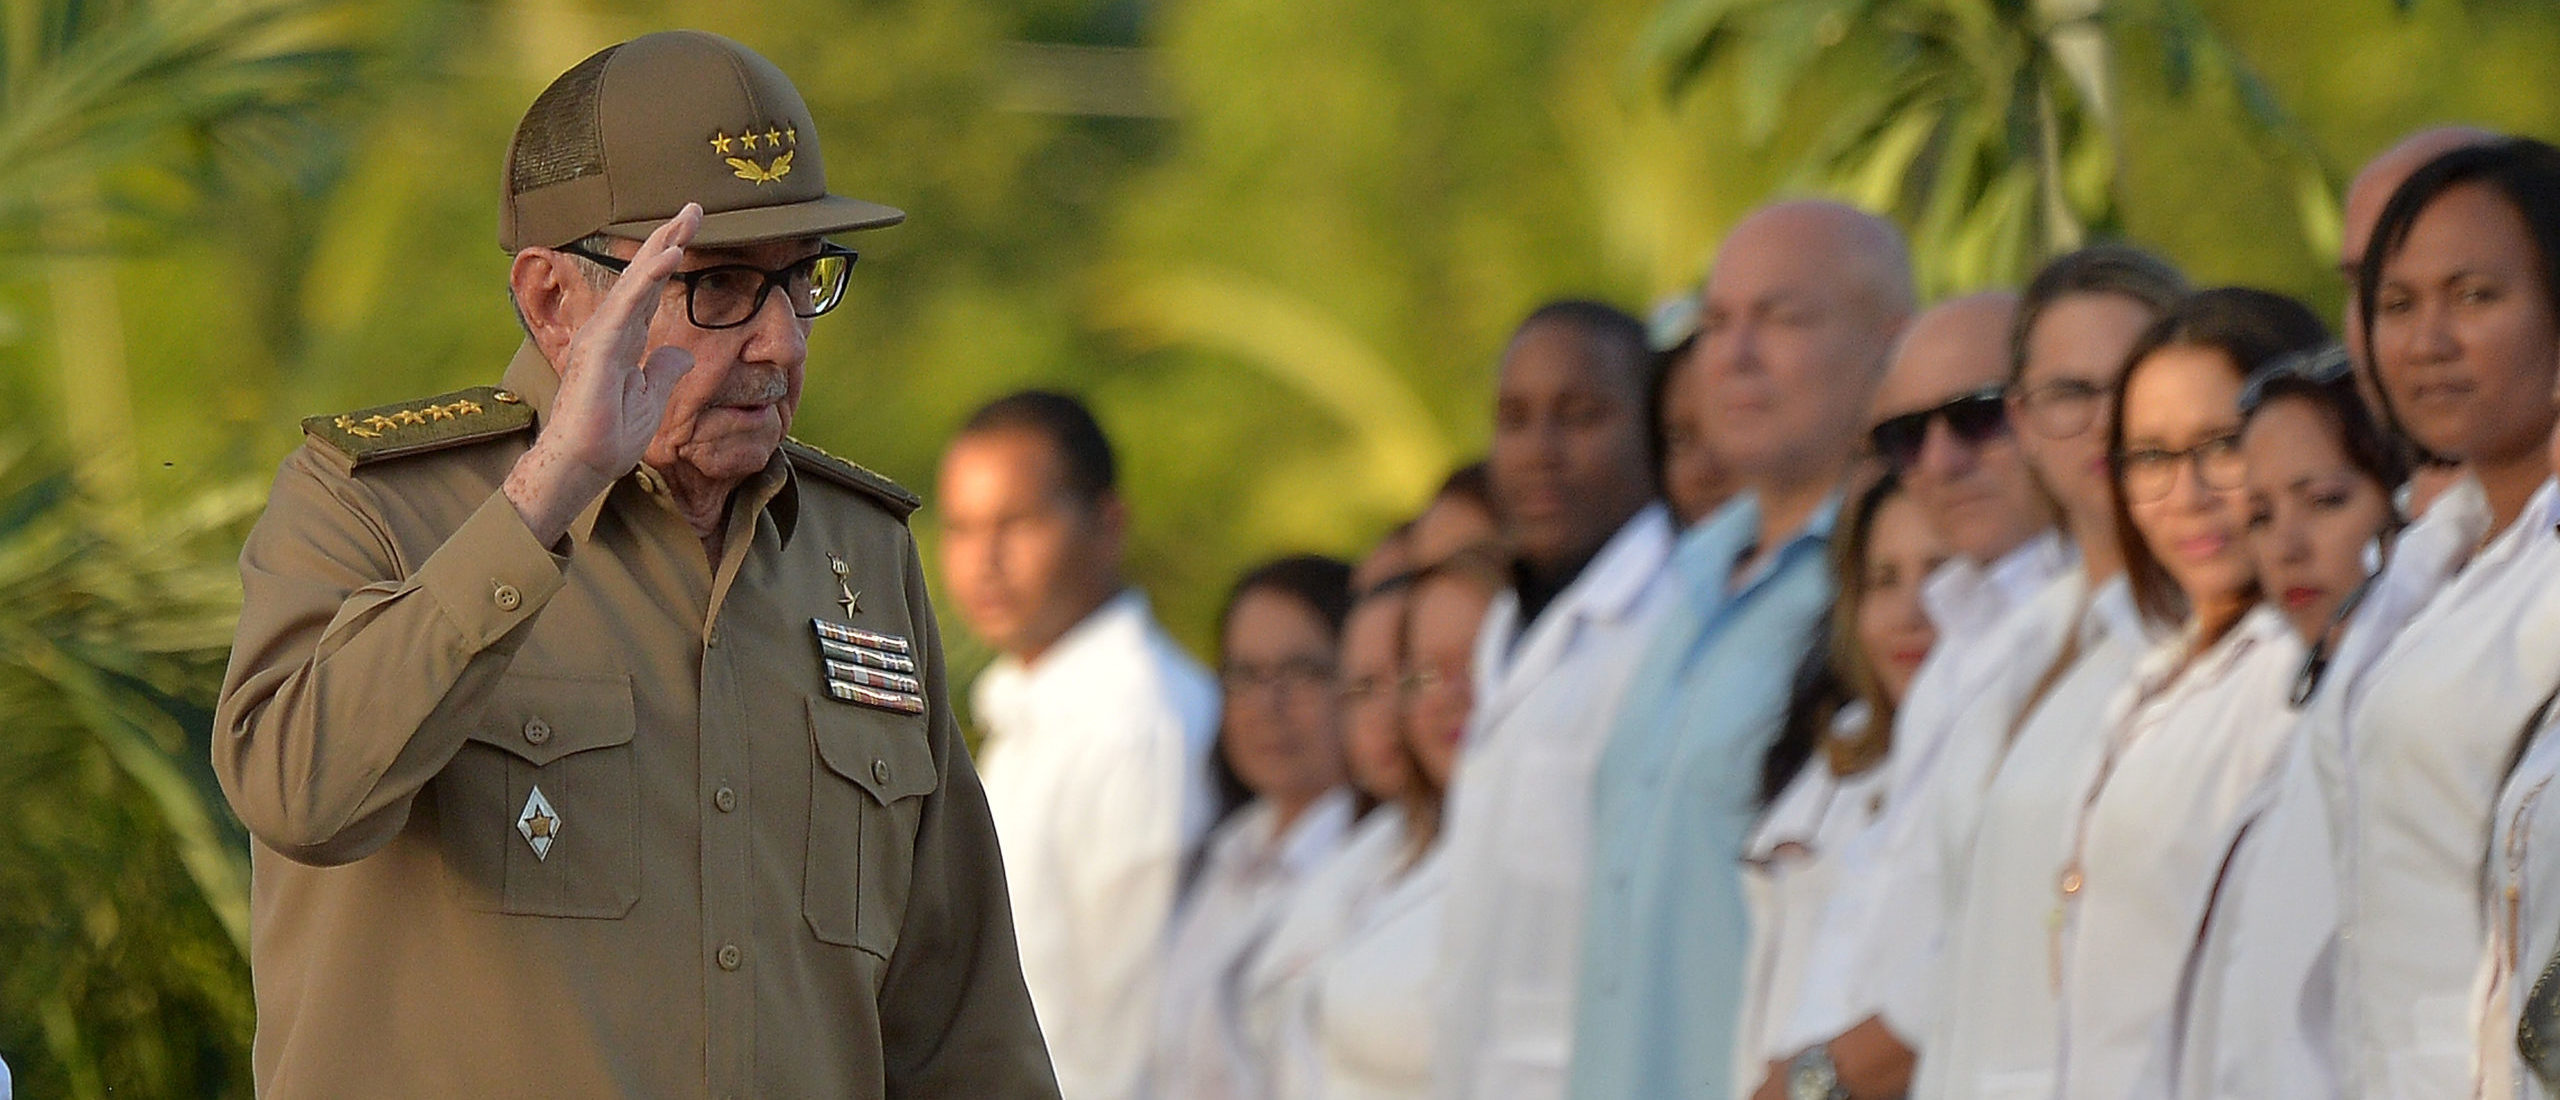 The Castro Era In Cuba Is Officially Over As Raul Castro Resigns From Communist Party Leadership